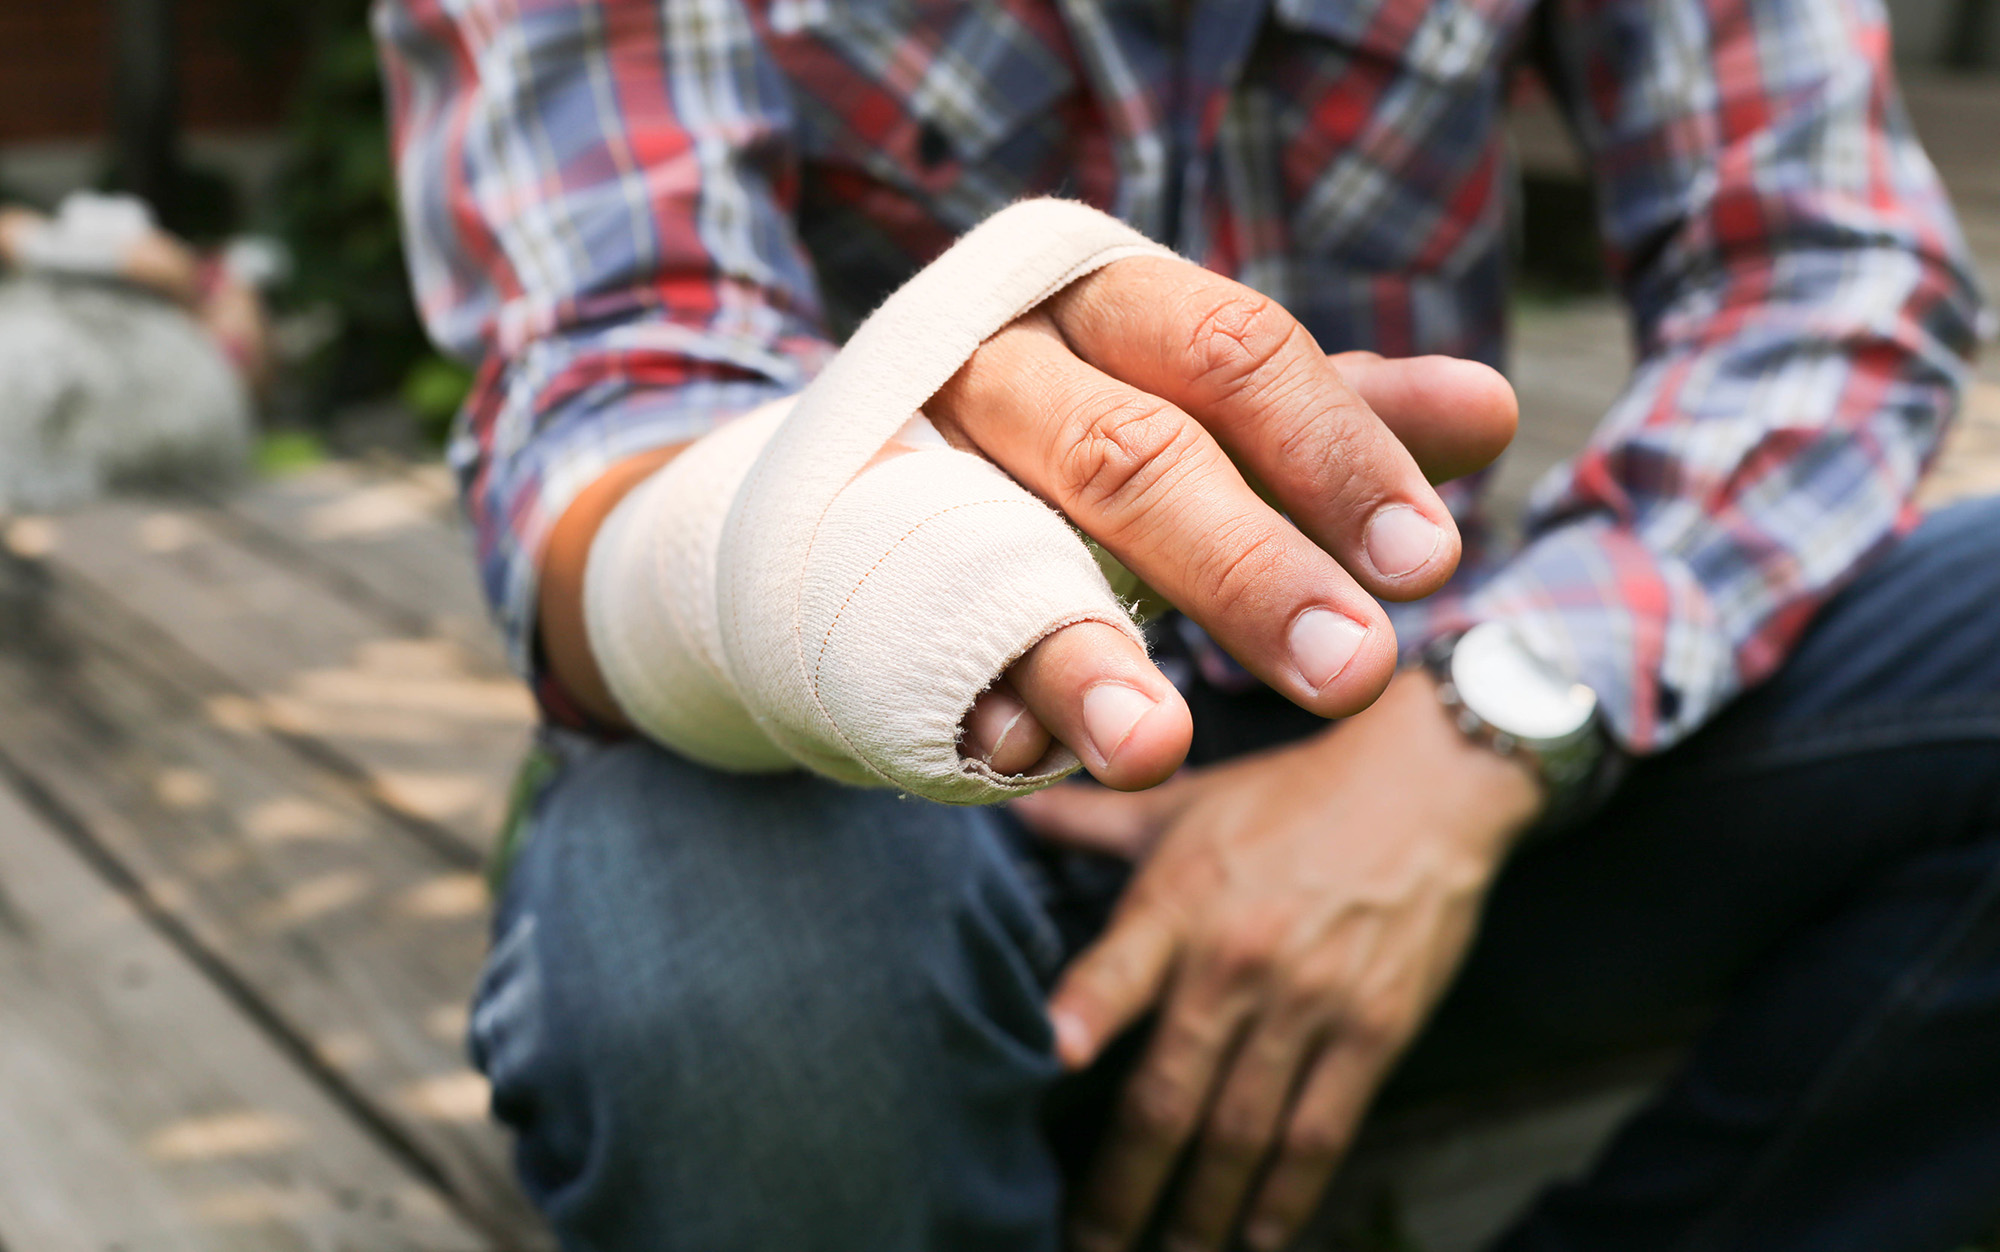 Finger and Hand personal injury solicitors Compensation